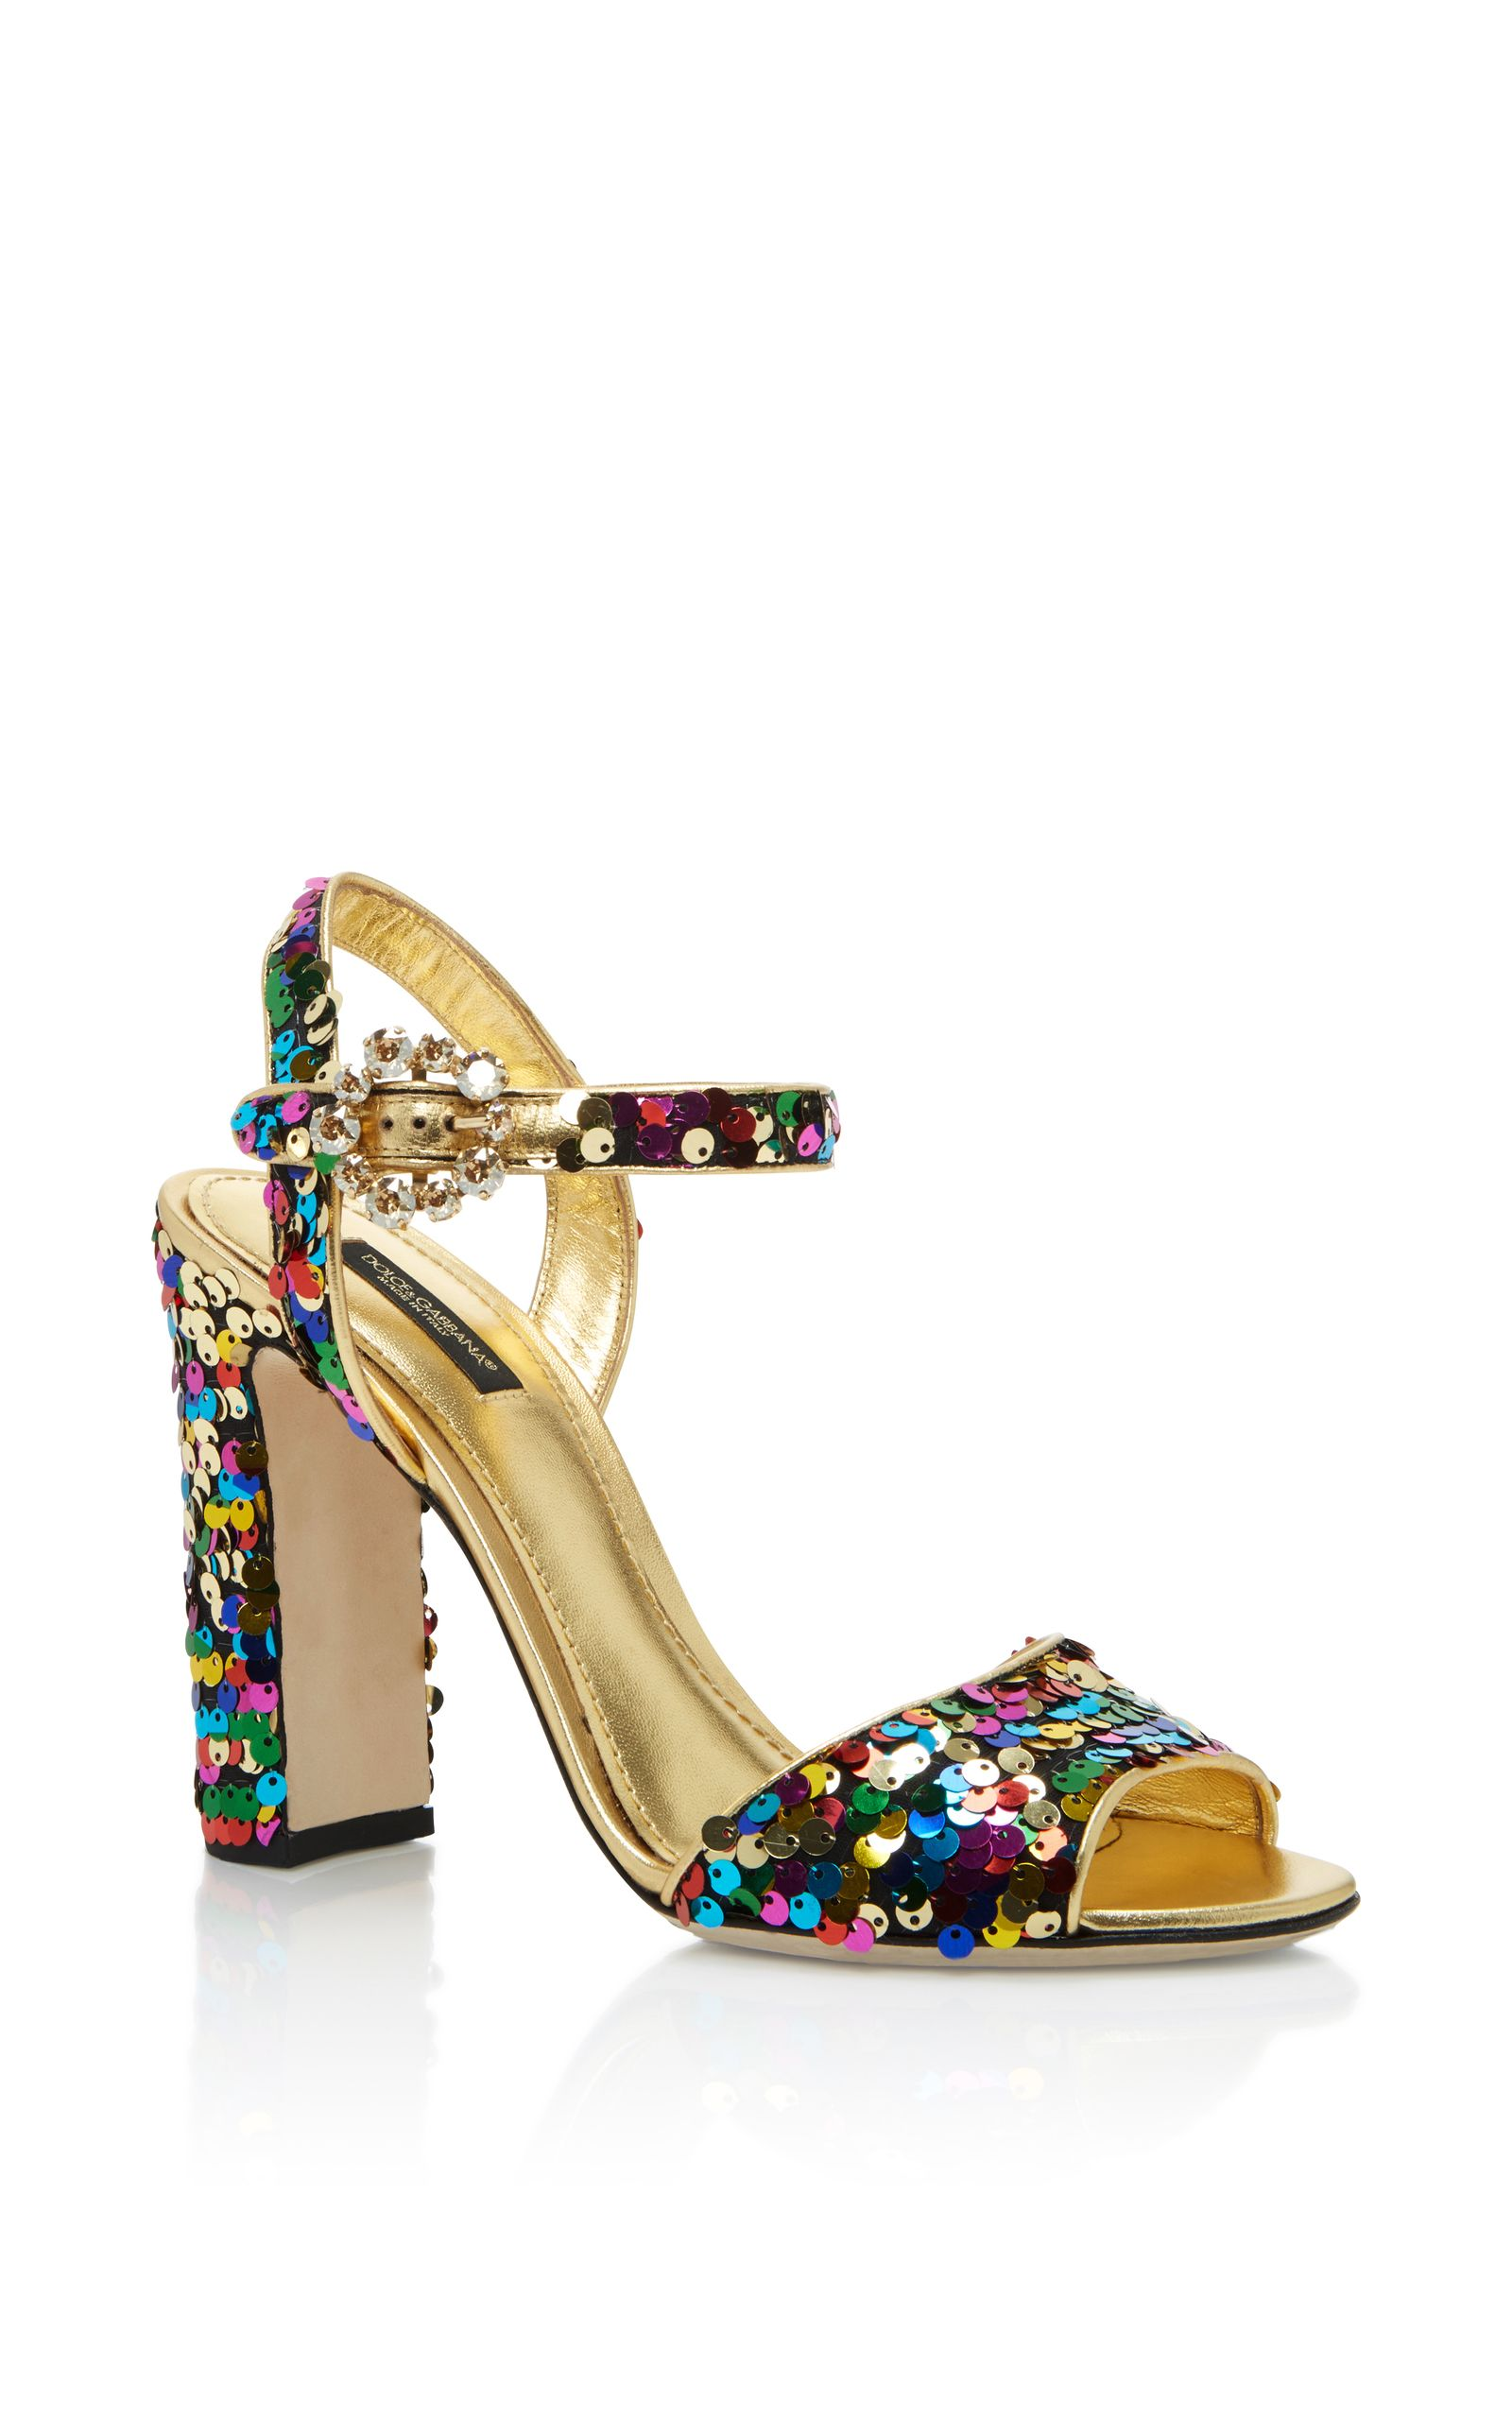 c6faf2cca262d7 DOLCE   GABBANA Sequined Leather Sandals.  dolcegabbana  shoes  sandals